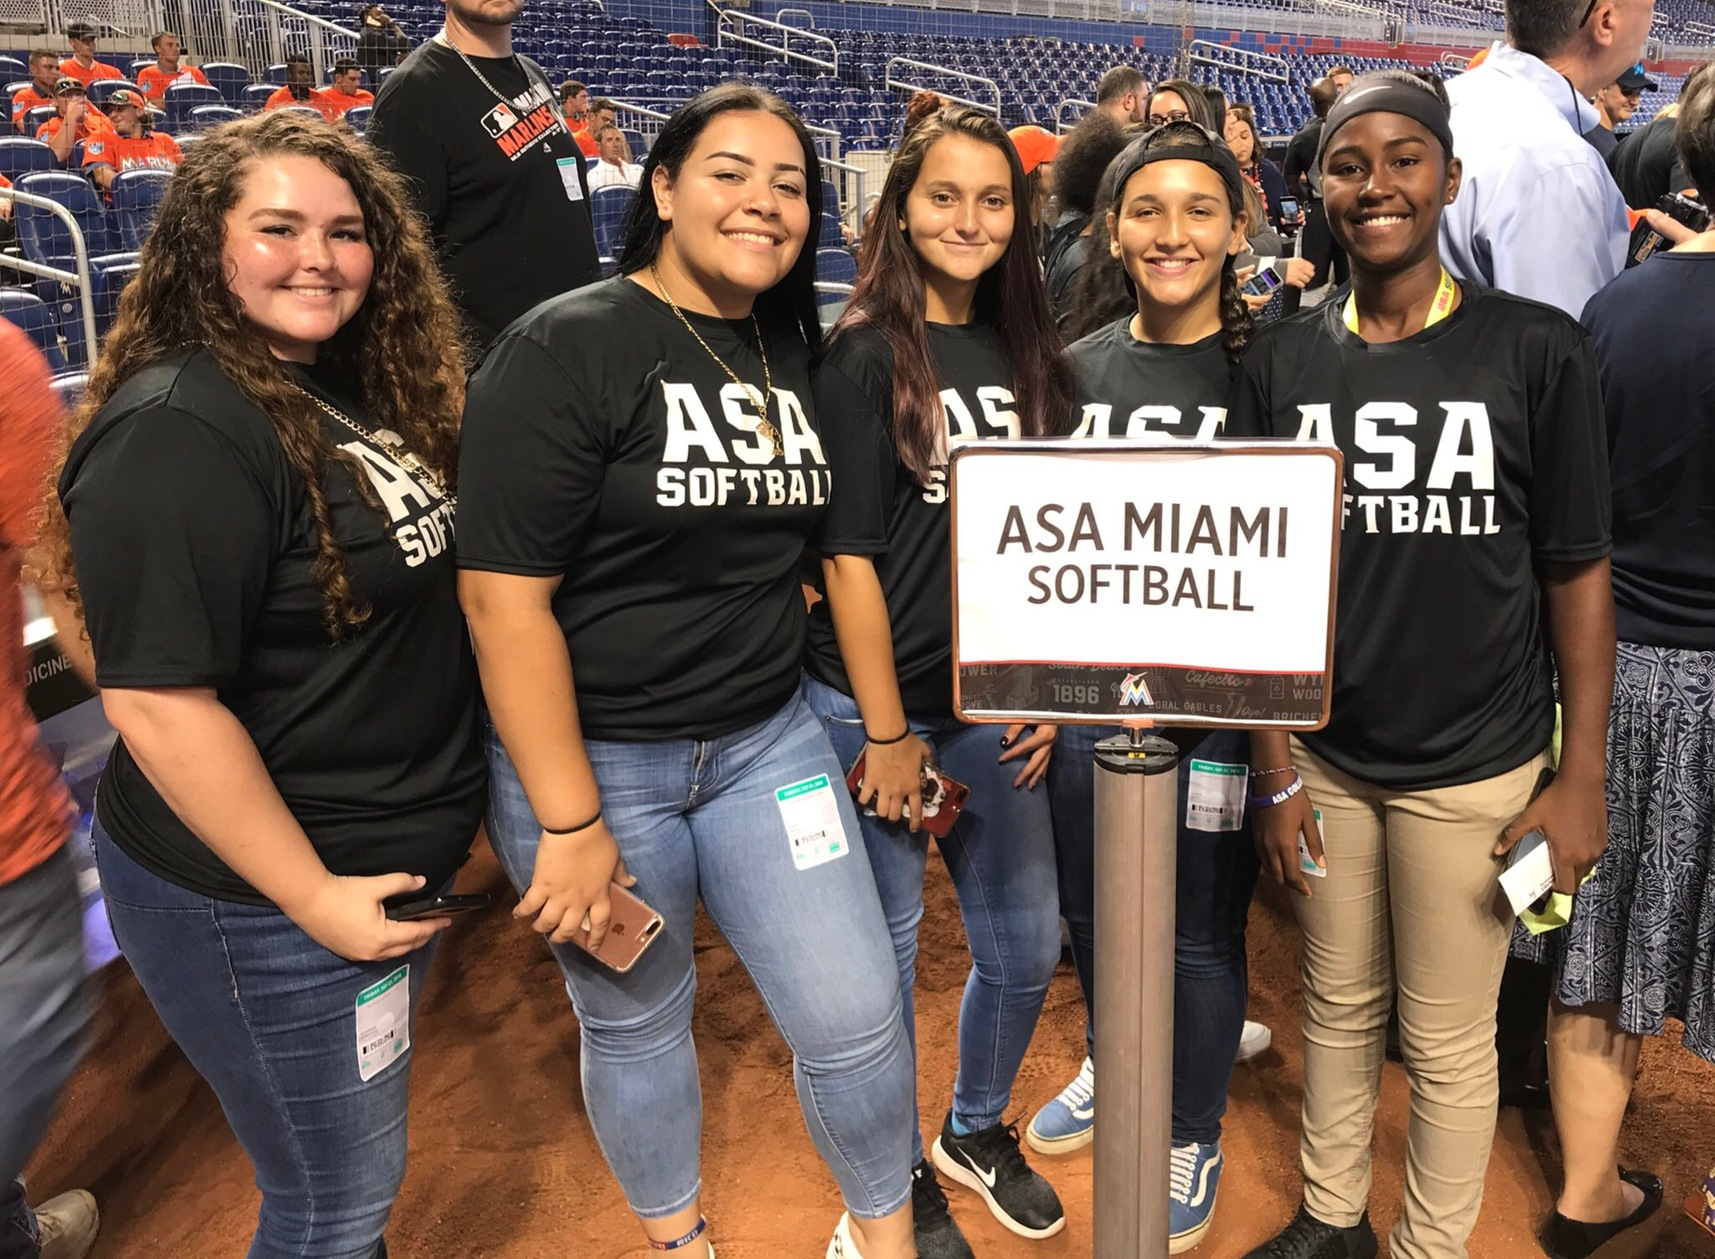 ASA Miami Has Team Building Night At Marlins Game